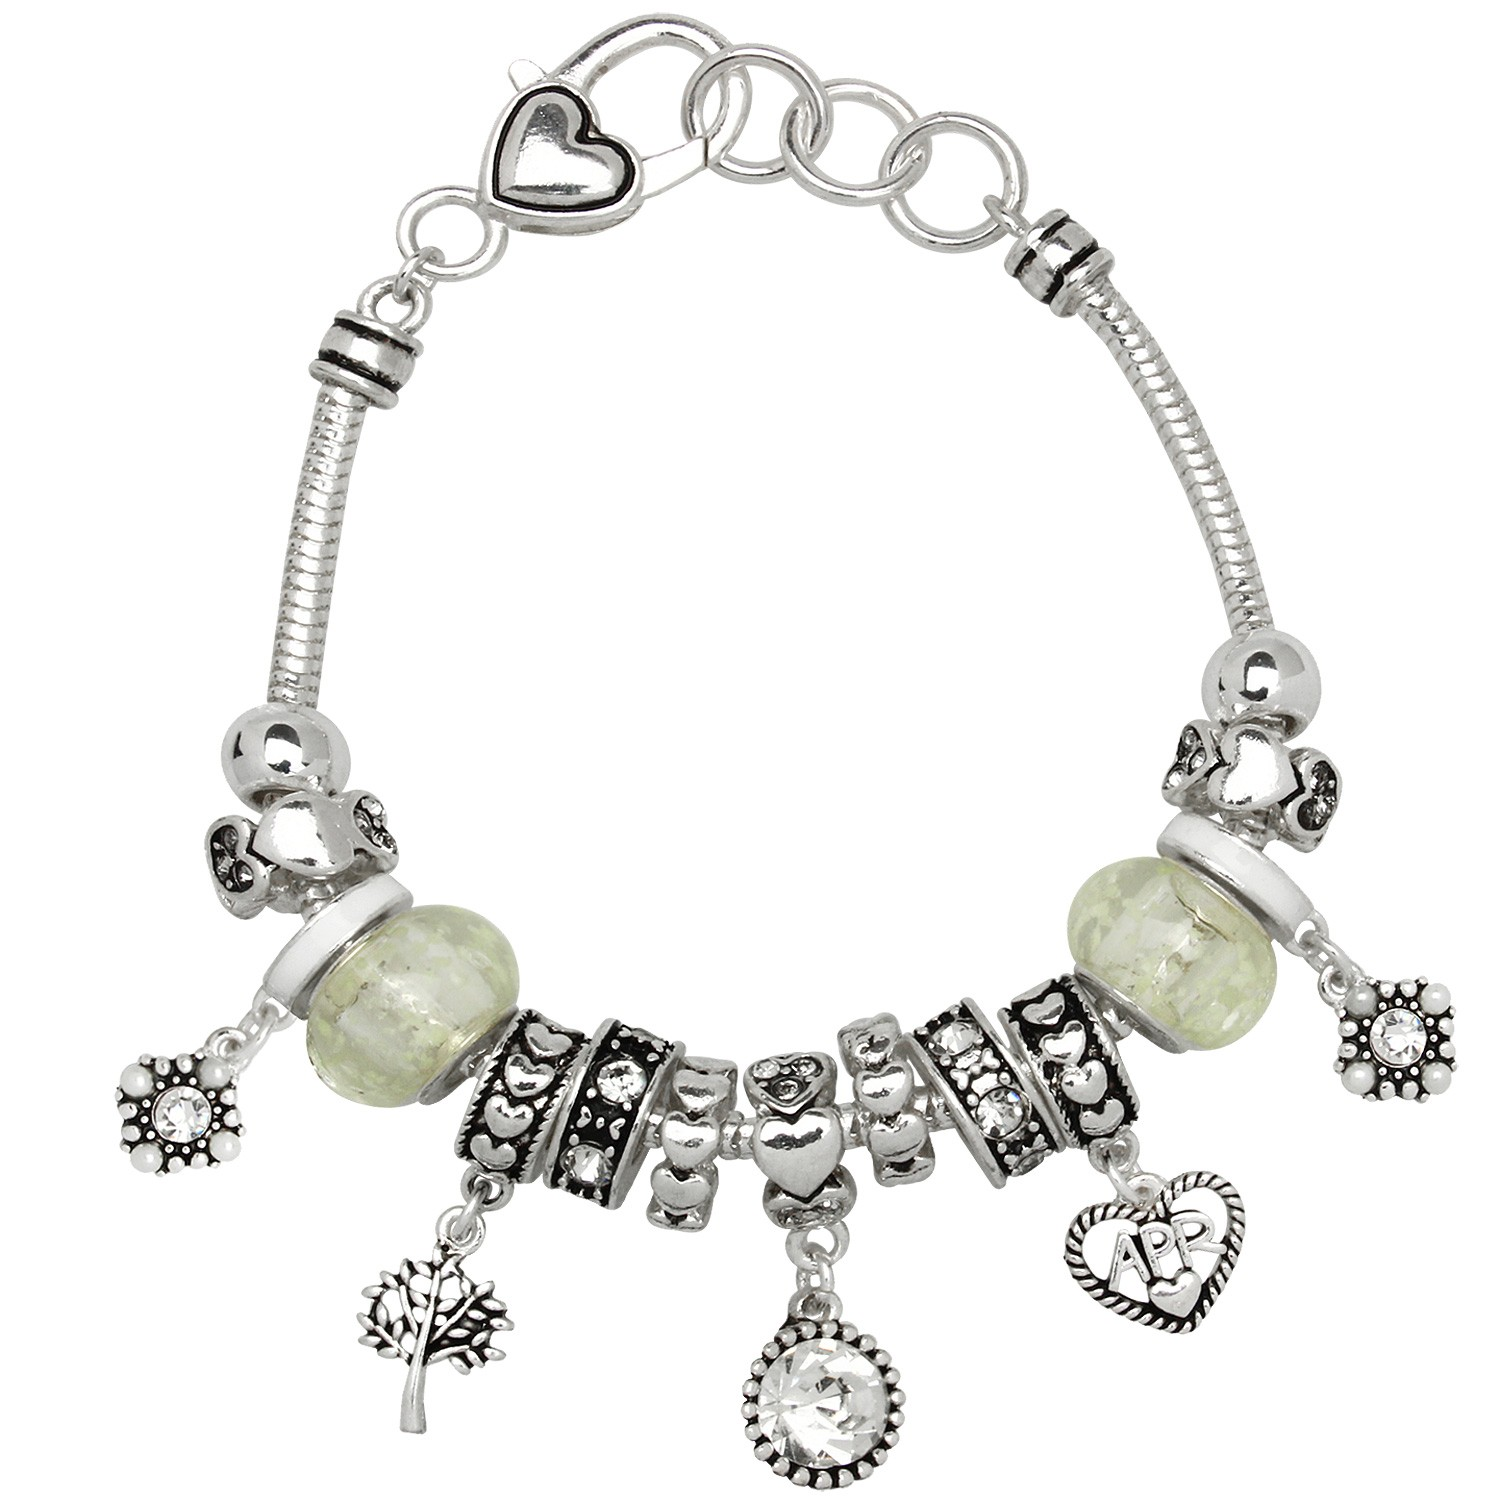 birthstone deals i sister august search have because sandra a s magsamen for shopping necklace online